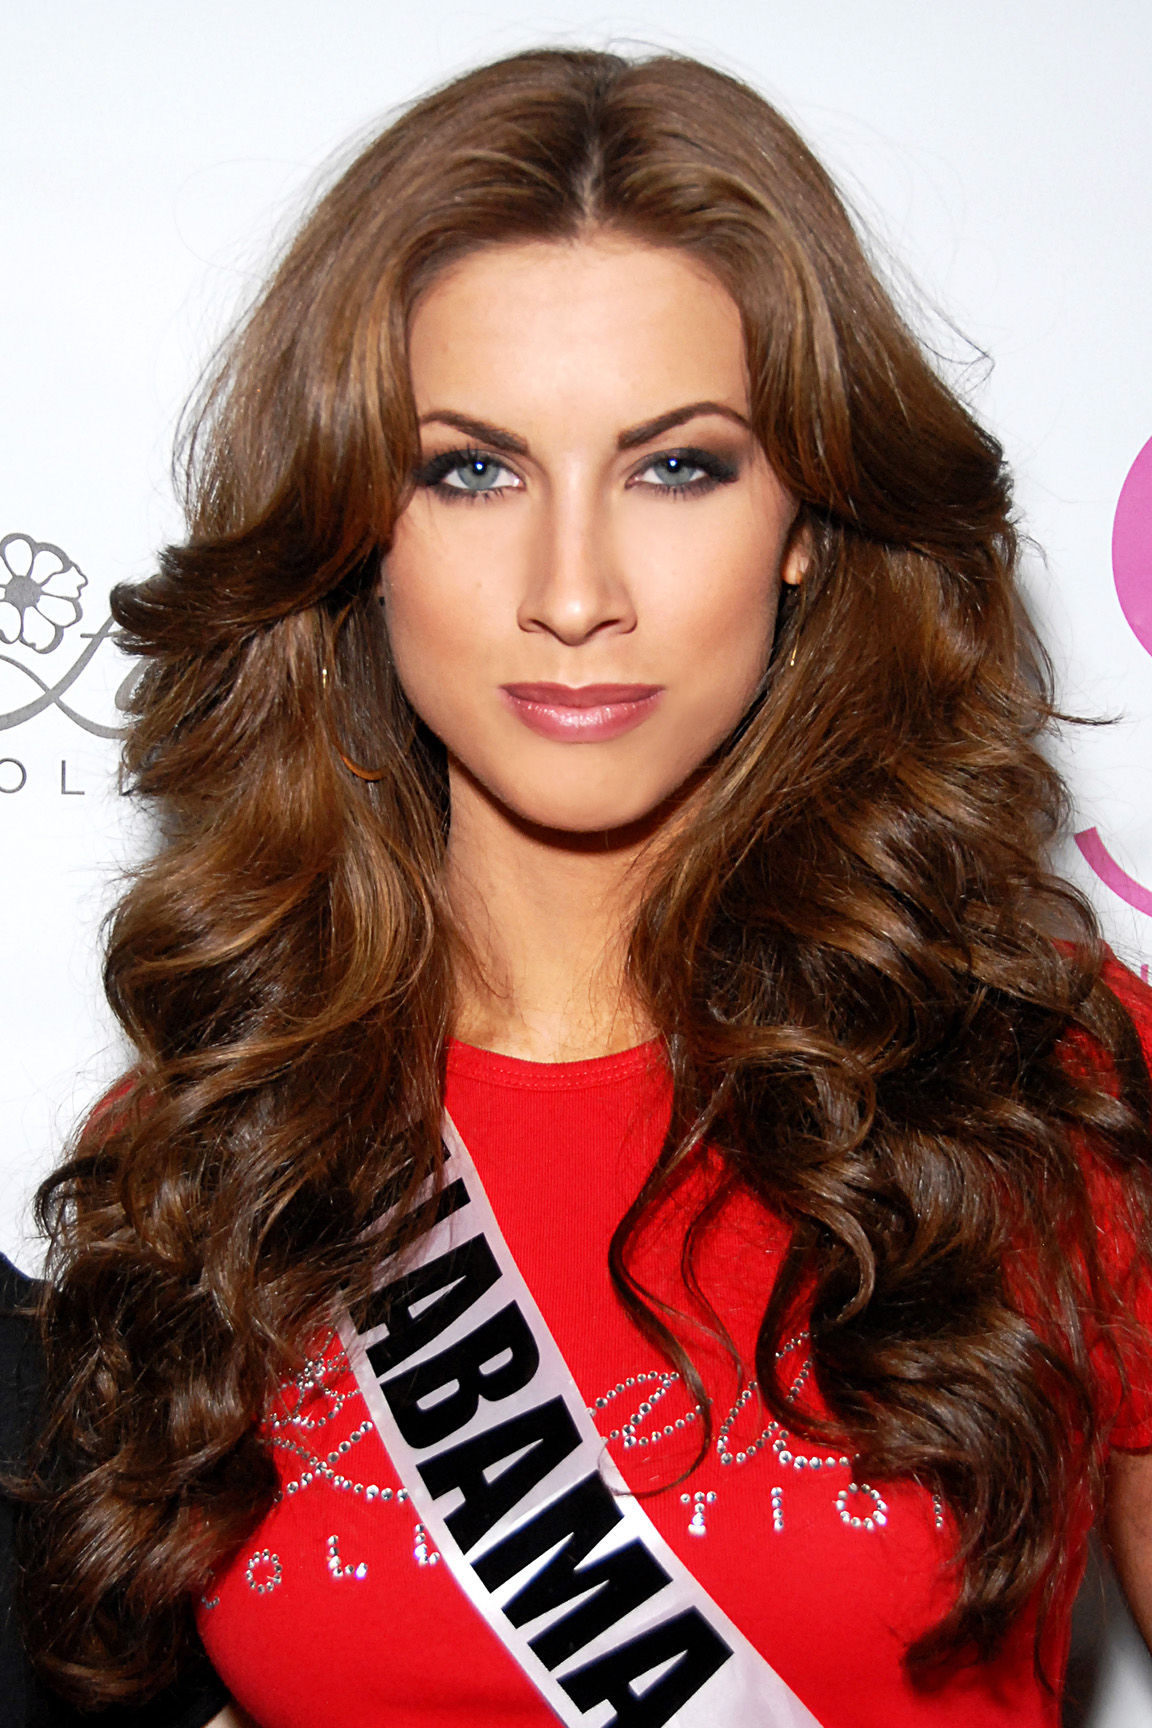 Photo of Katherine Webb: American model, beauty queen, television personality